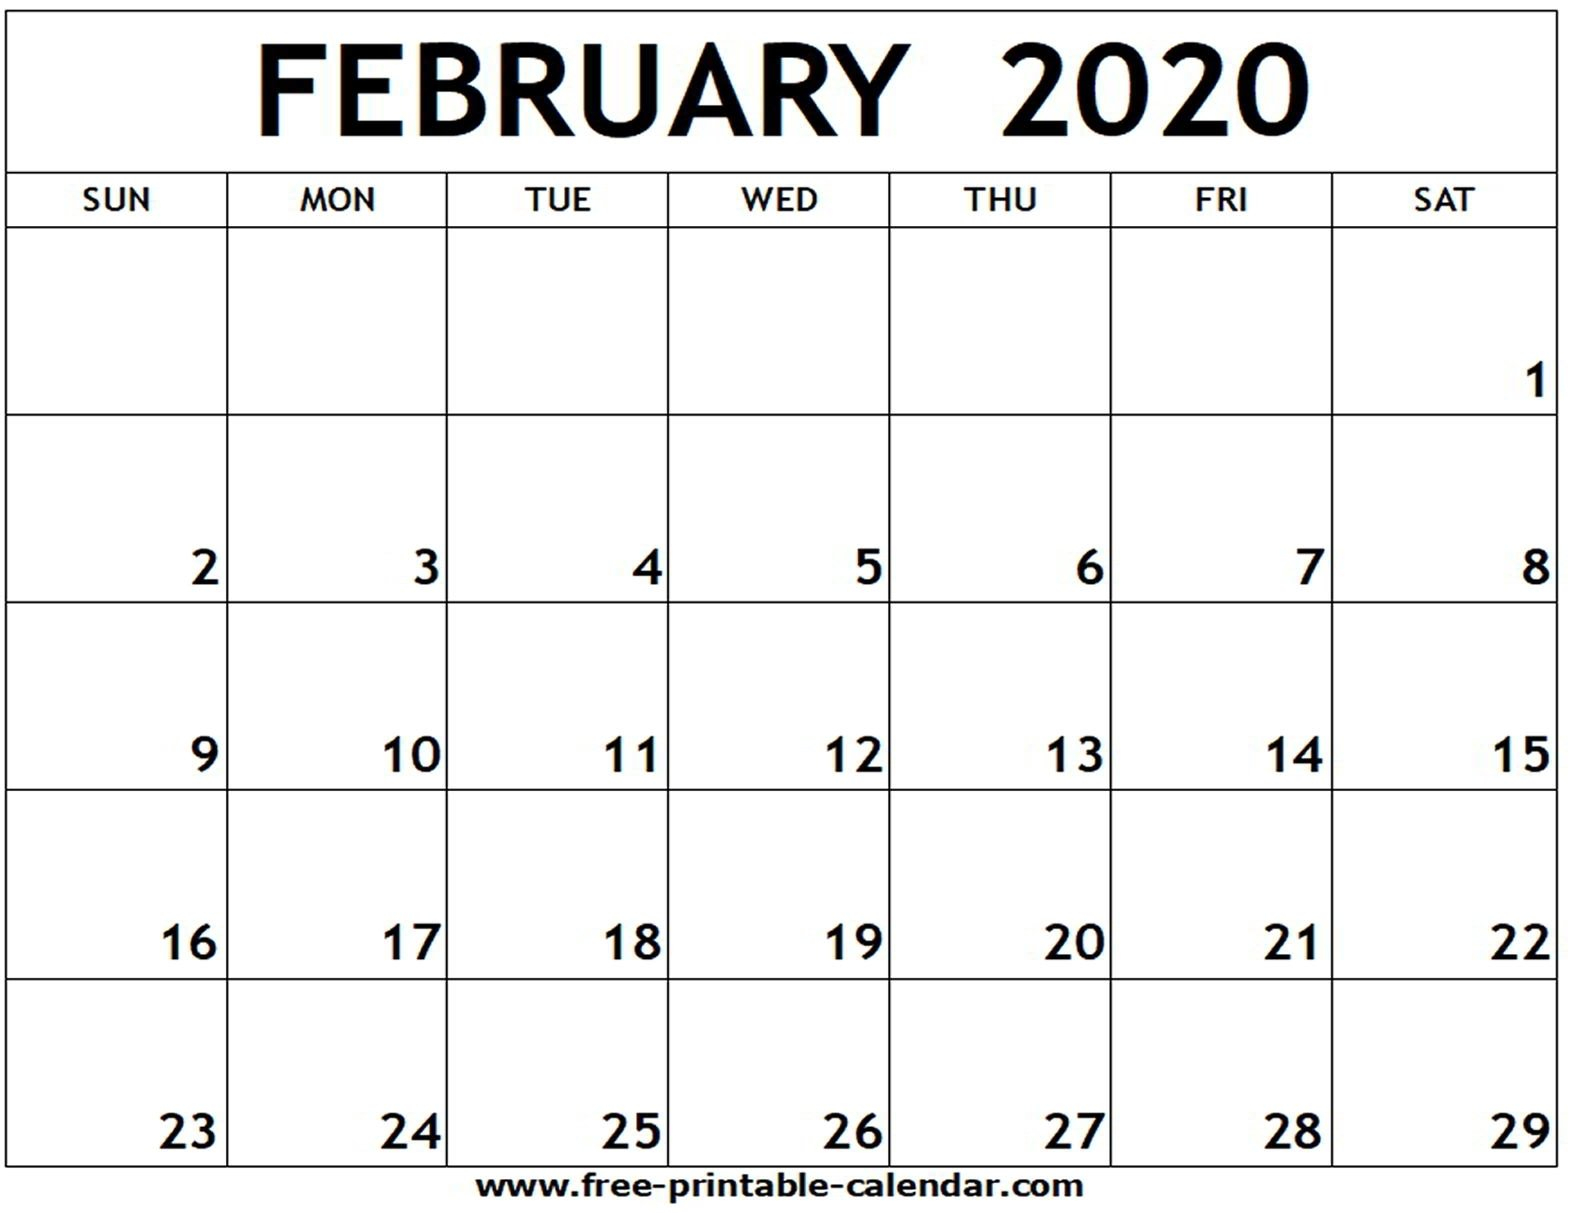 2020 Free Printable Calendars Without Downloading Free Printable Calendar Without Downloading